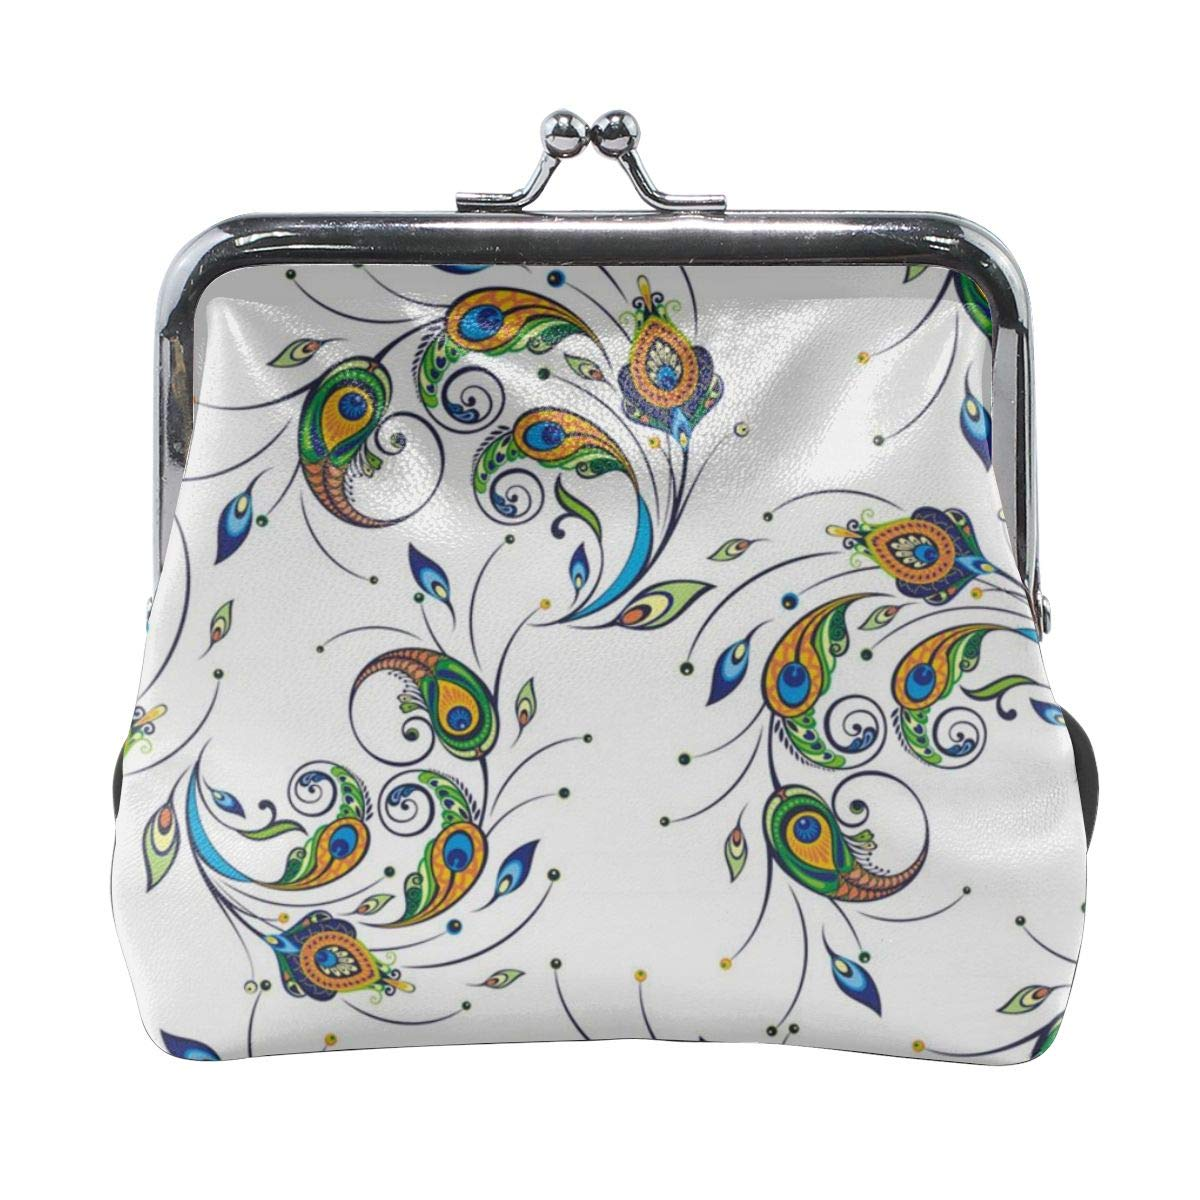 Yunshm Peacock Feathers Vector Image Customized Leather Classic Floral Coin Purse Clutch Pouch Wallet For Womens